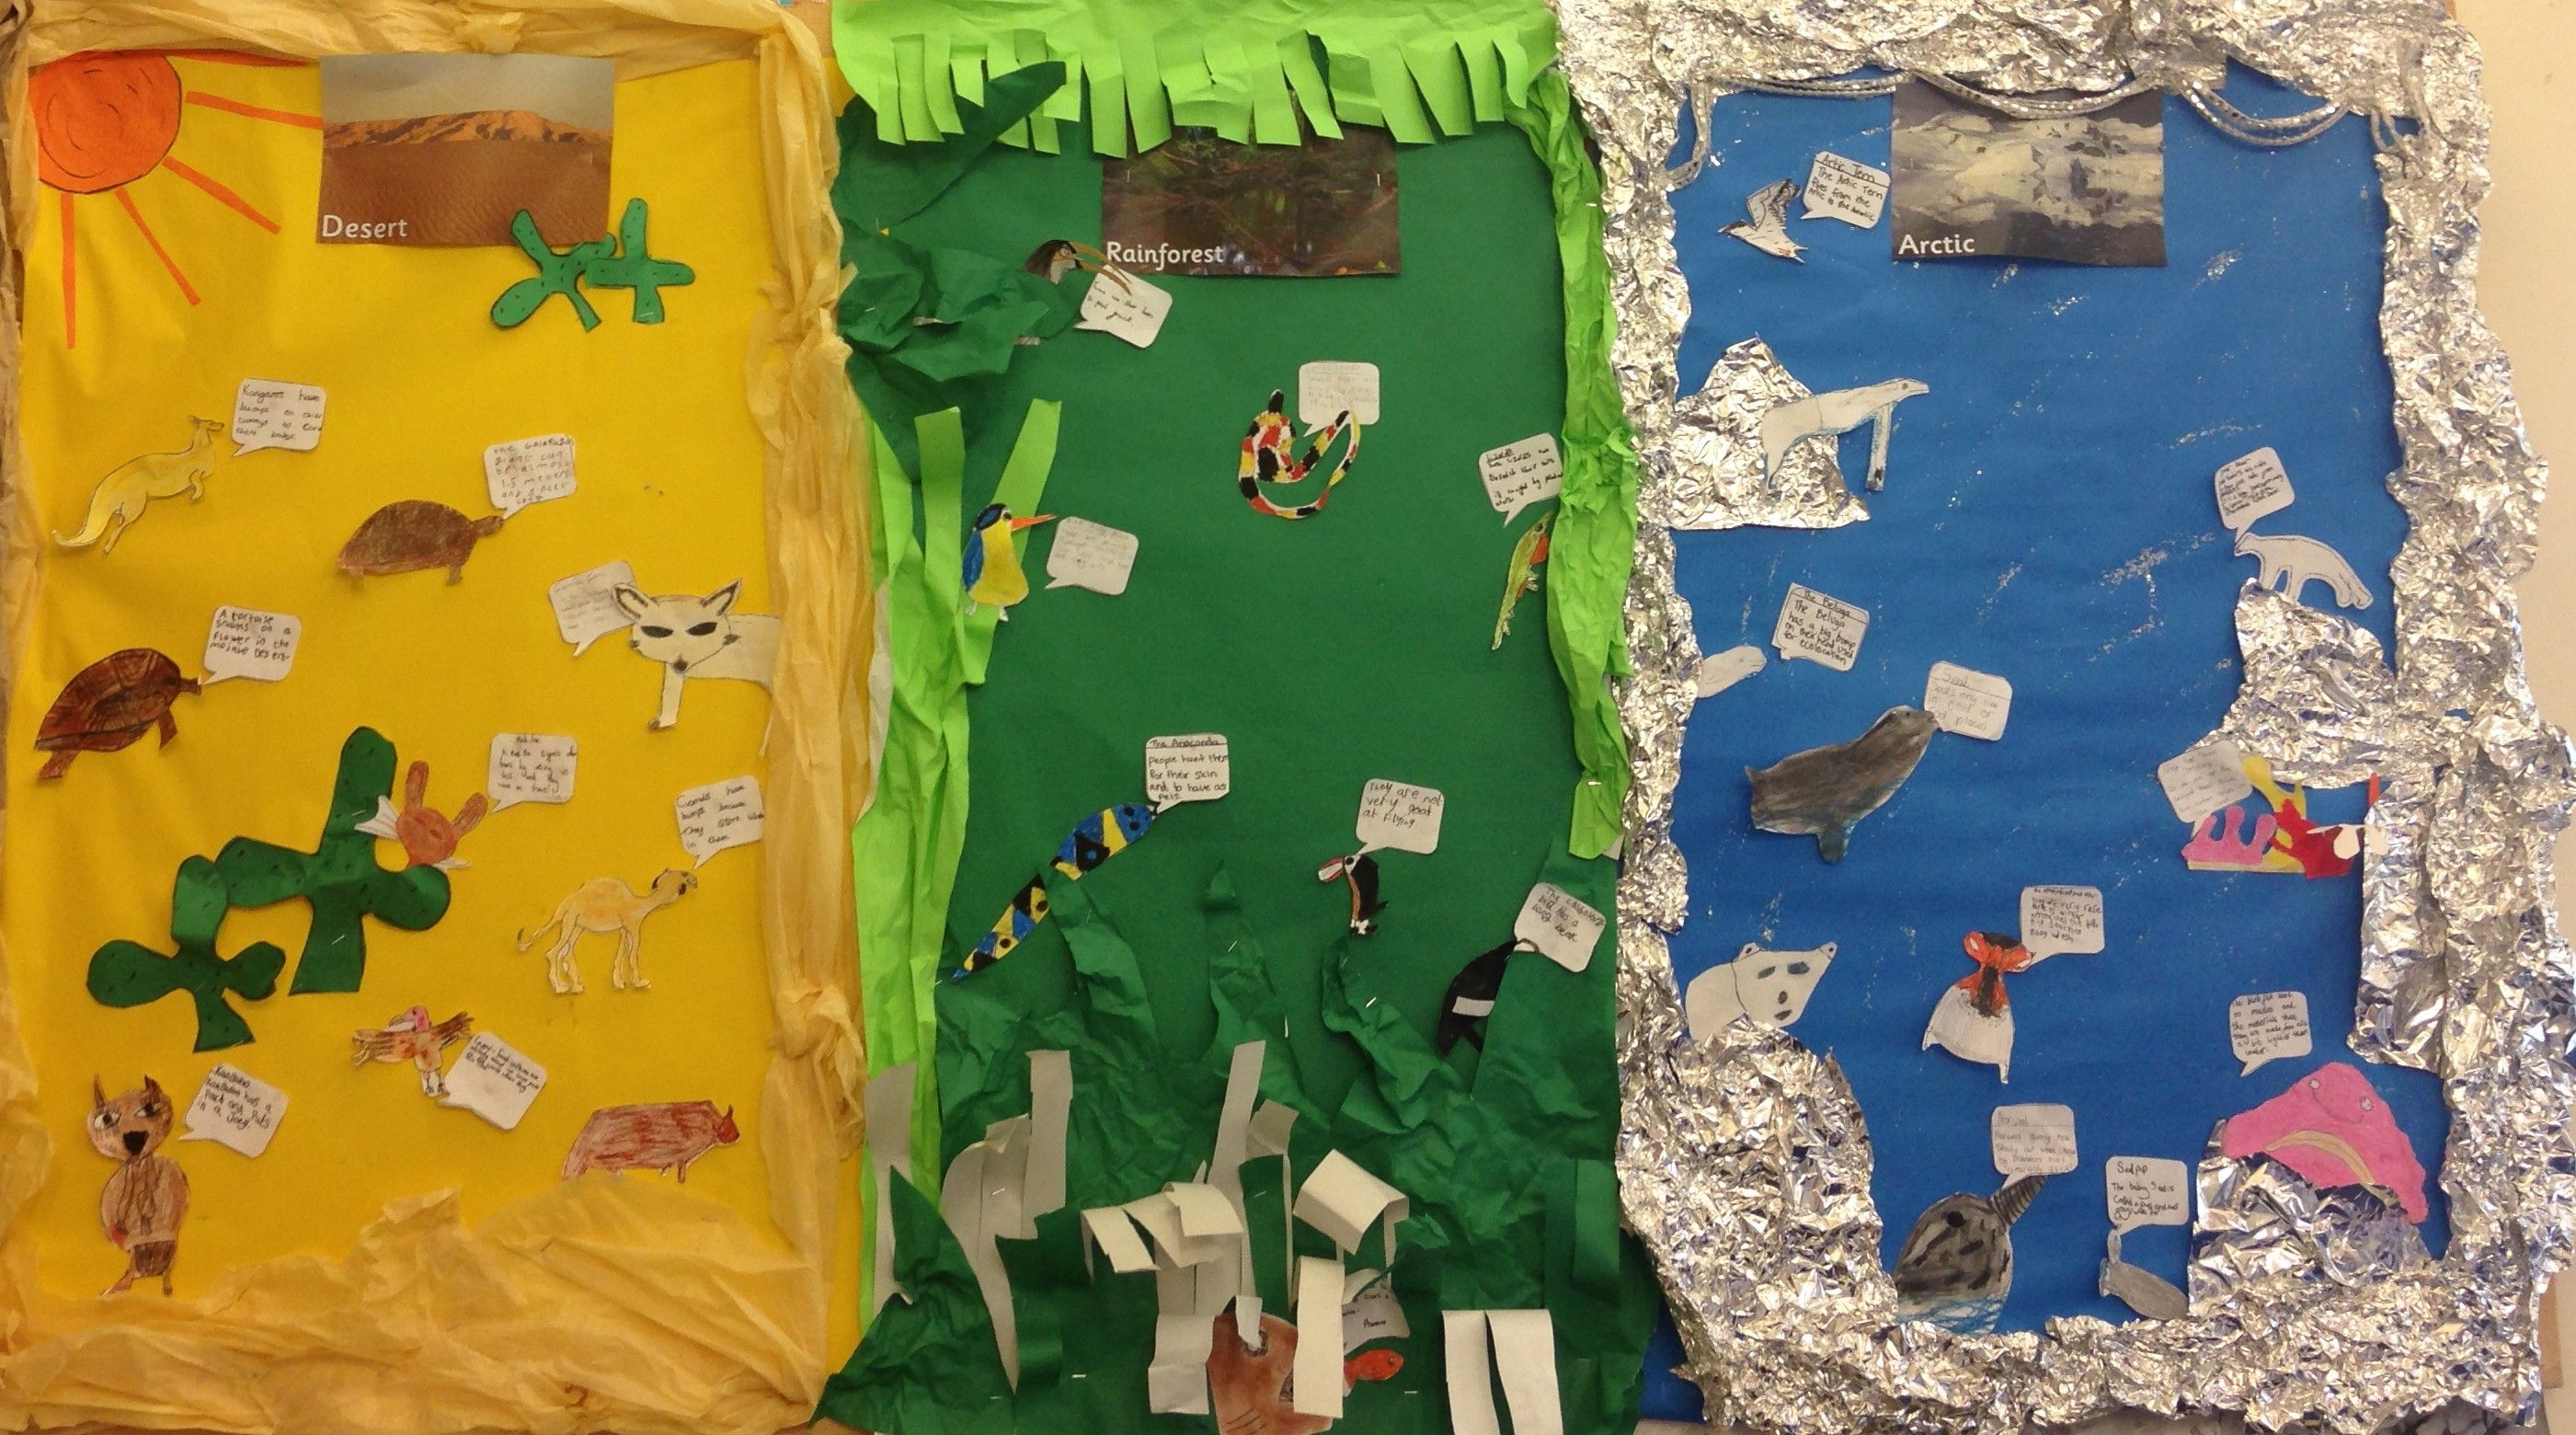 Science Display For Living Things And Their Habitats